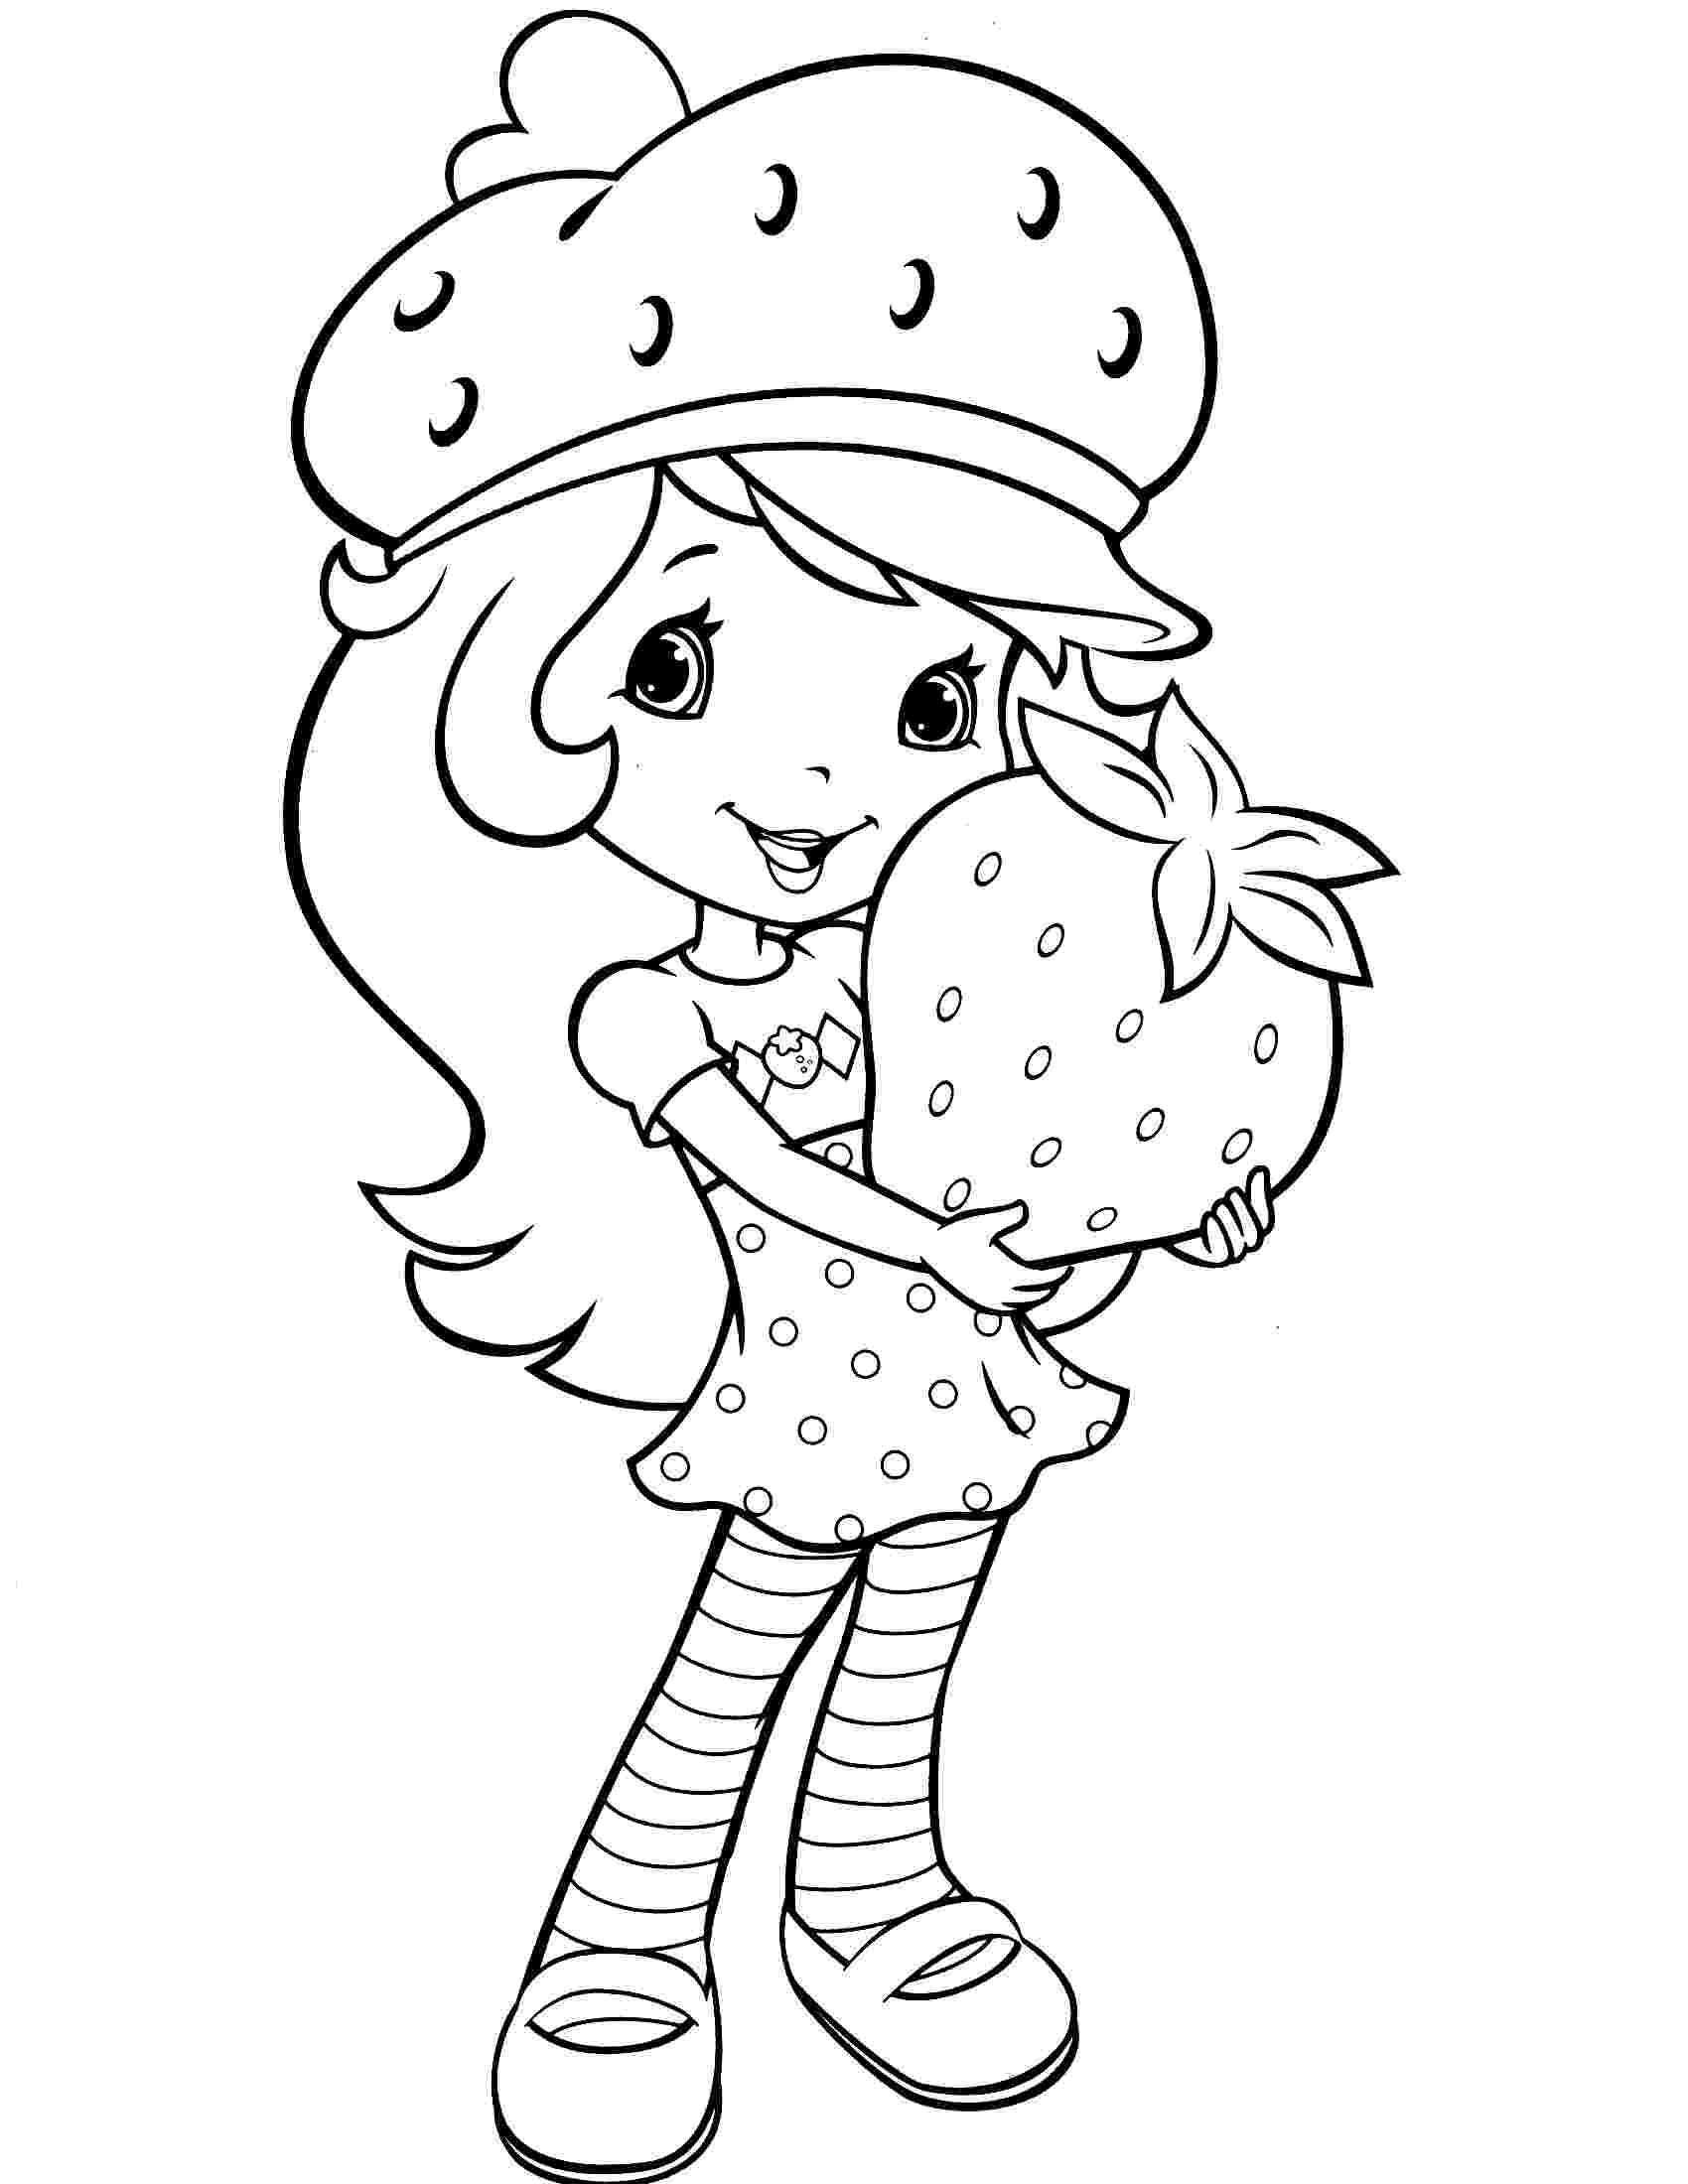 strawberry shortcake printable coloring pages strawberry shortcake coloring pages coloring pages for kids printable pages shortcake strawberry coloring